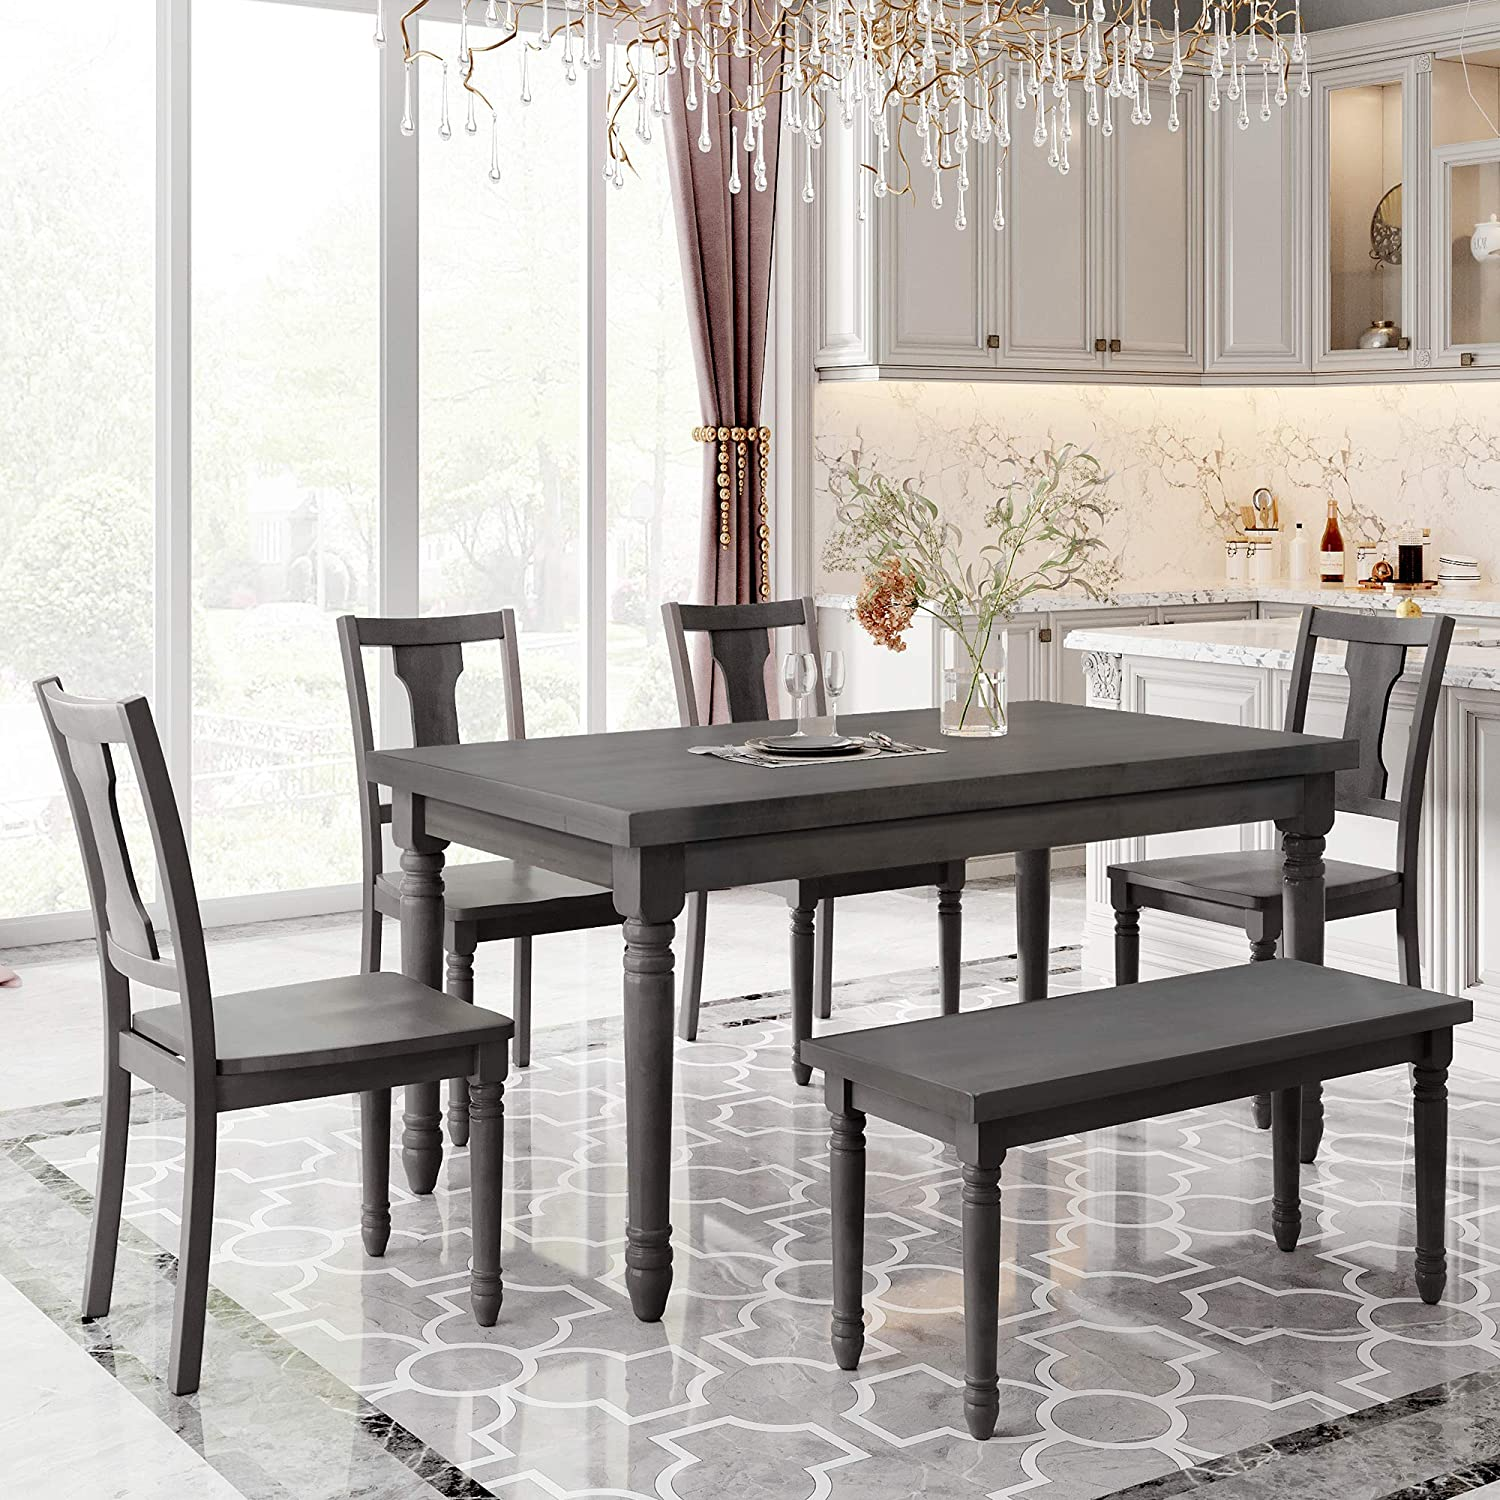 Maforob Wooden Set Table And 4 Chairs, Dining Room Table With 4 Chairs And A Bench